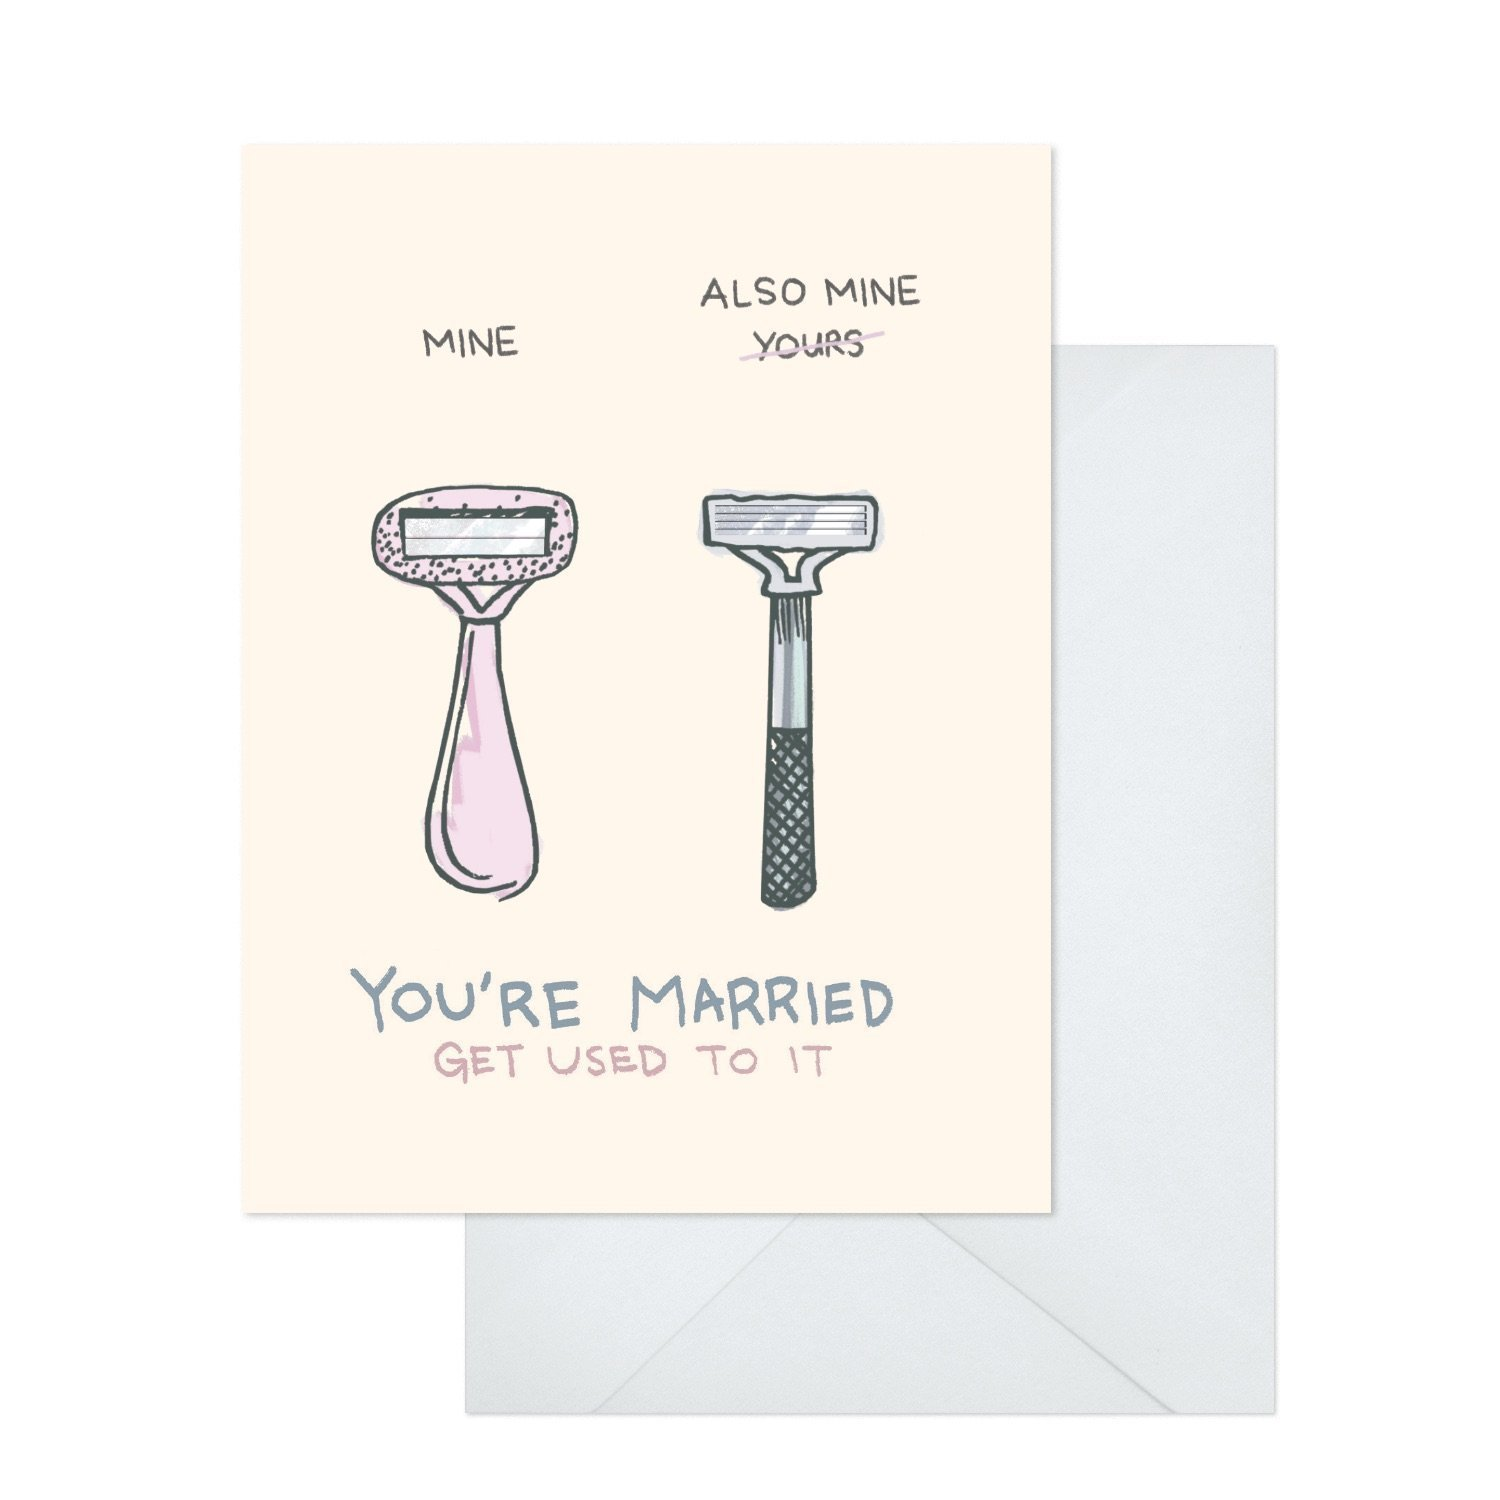 Mine and Also Mine Wedding Card - Funny, Sarcastic, Humour